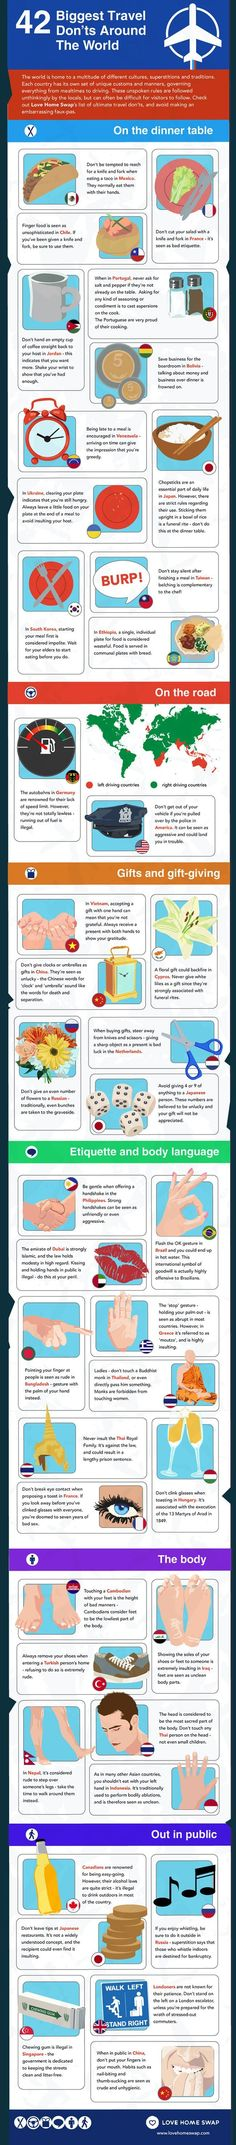 42 Biggest Travel Don'ts Around The World | Don't get caught without this handy guide!